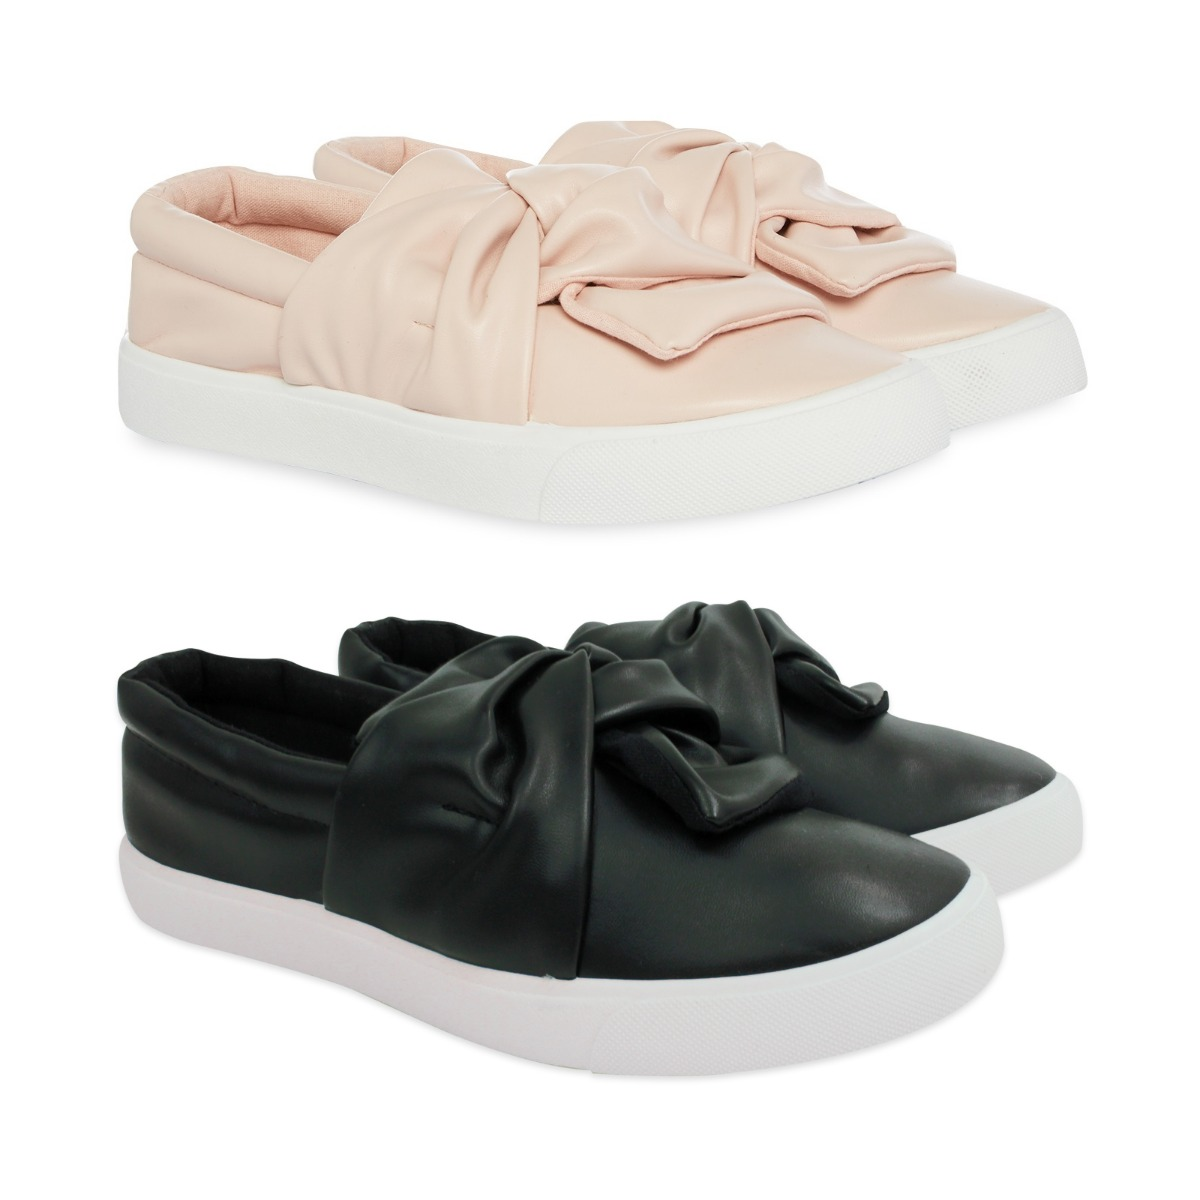 971e8dd6c ... Girls pink pumps and girls black pumps with bow detail to the front  available in sizes